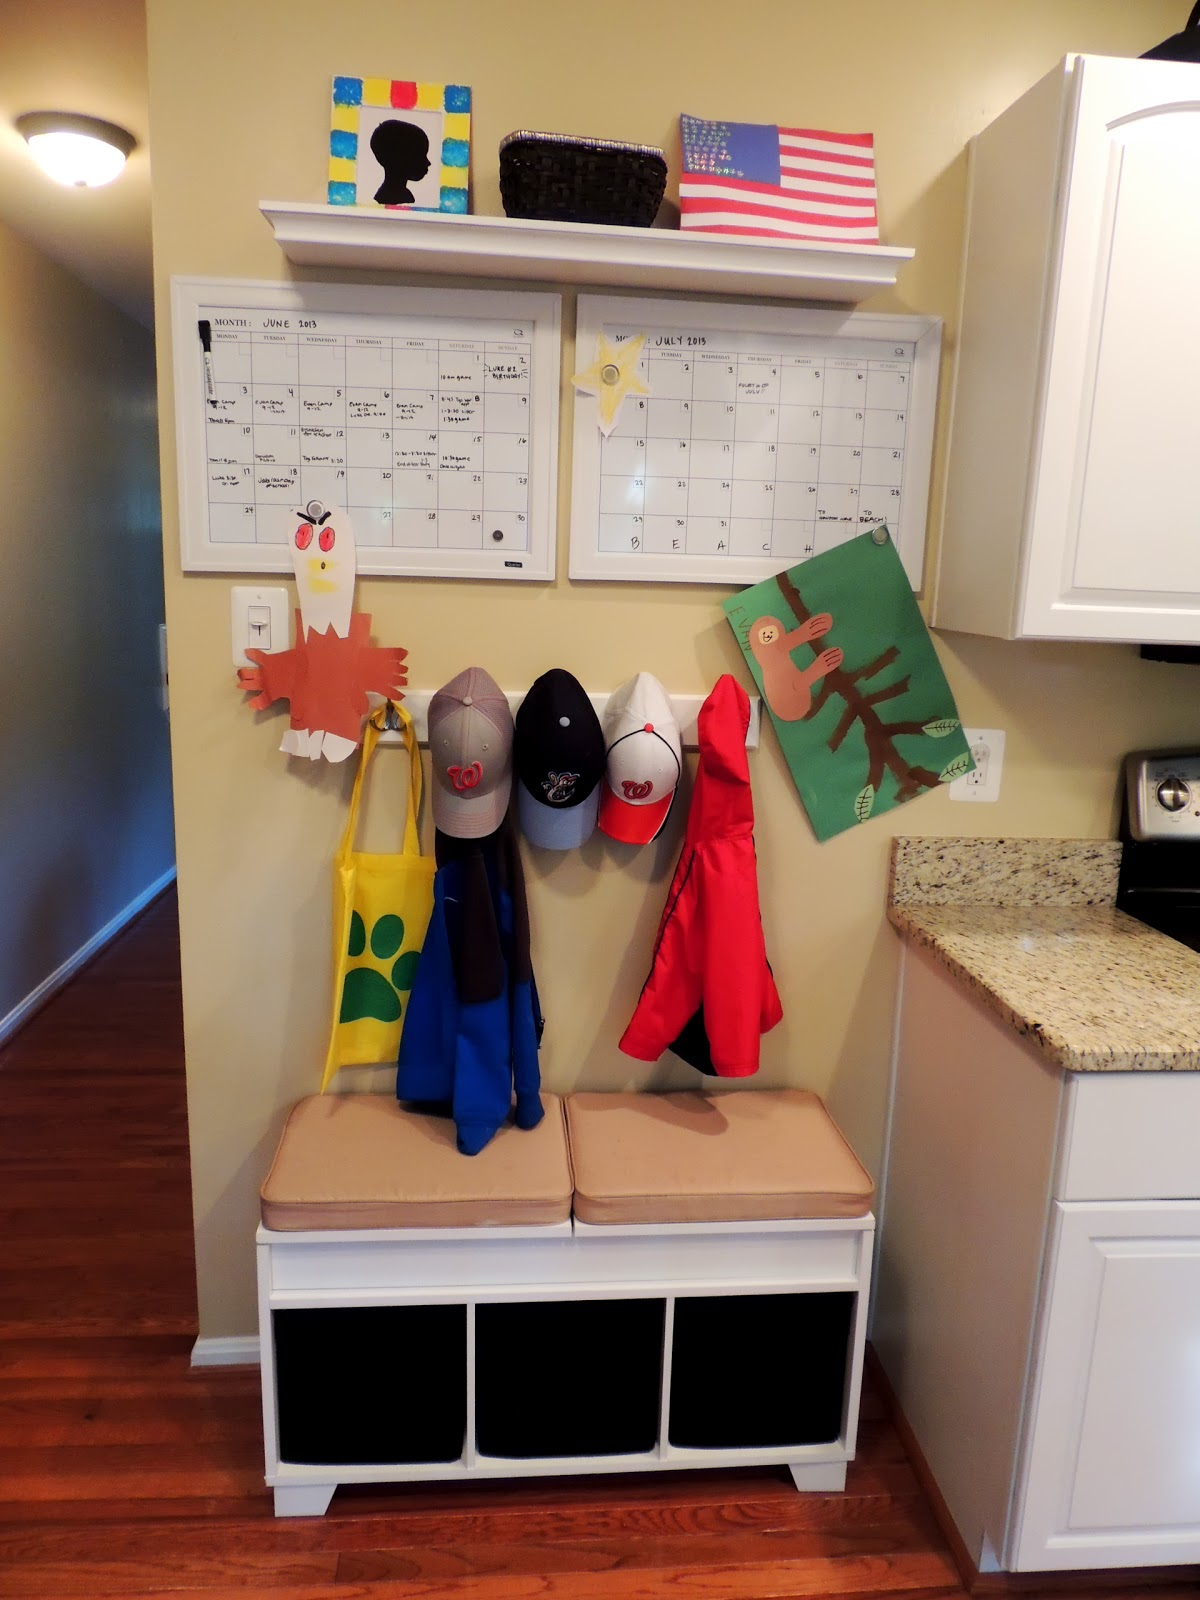 H family happenings our kitchen drop zone command center for Kitchen drop zone ideas